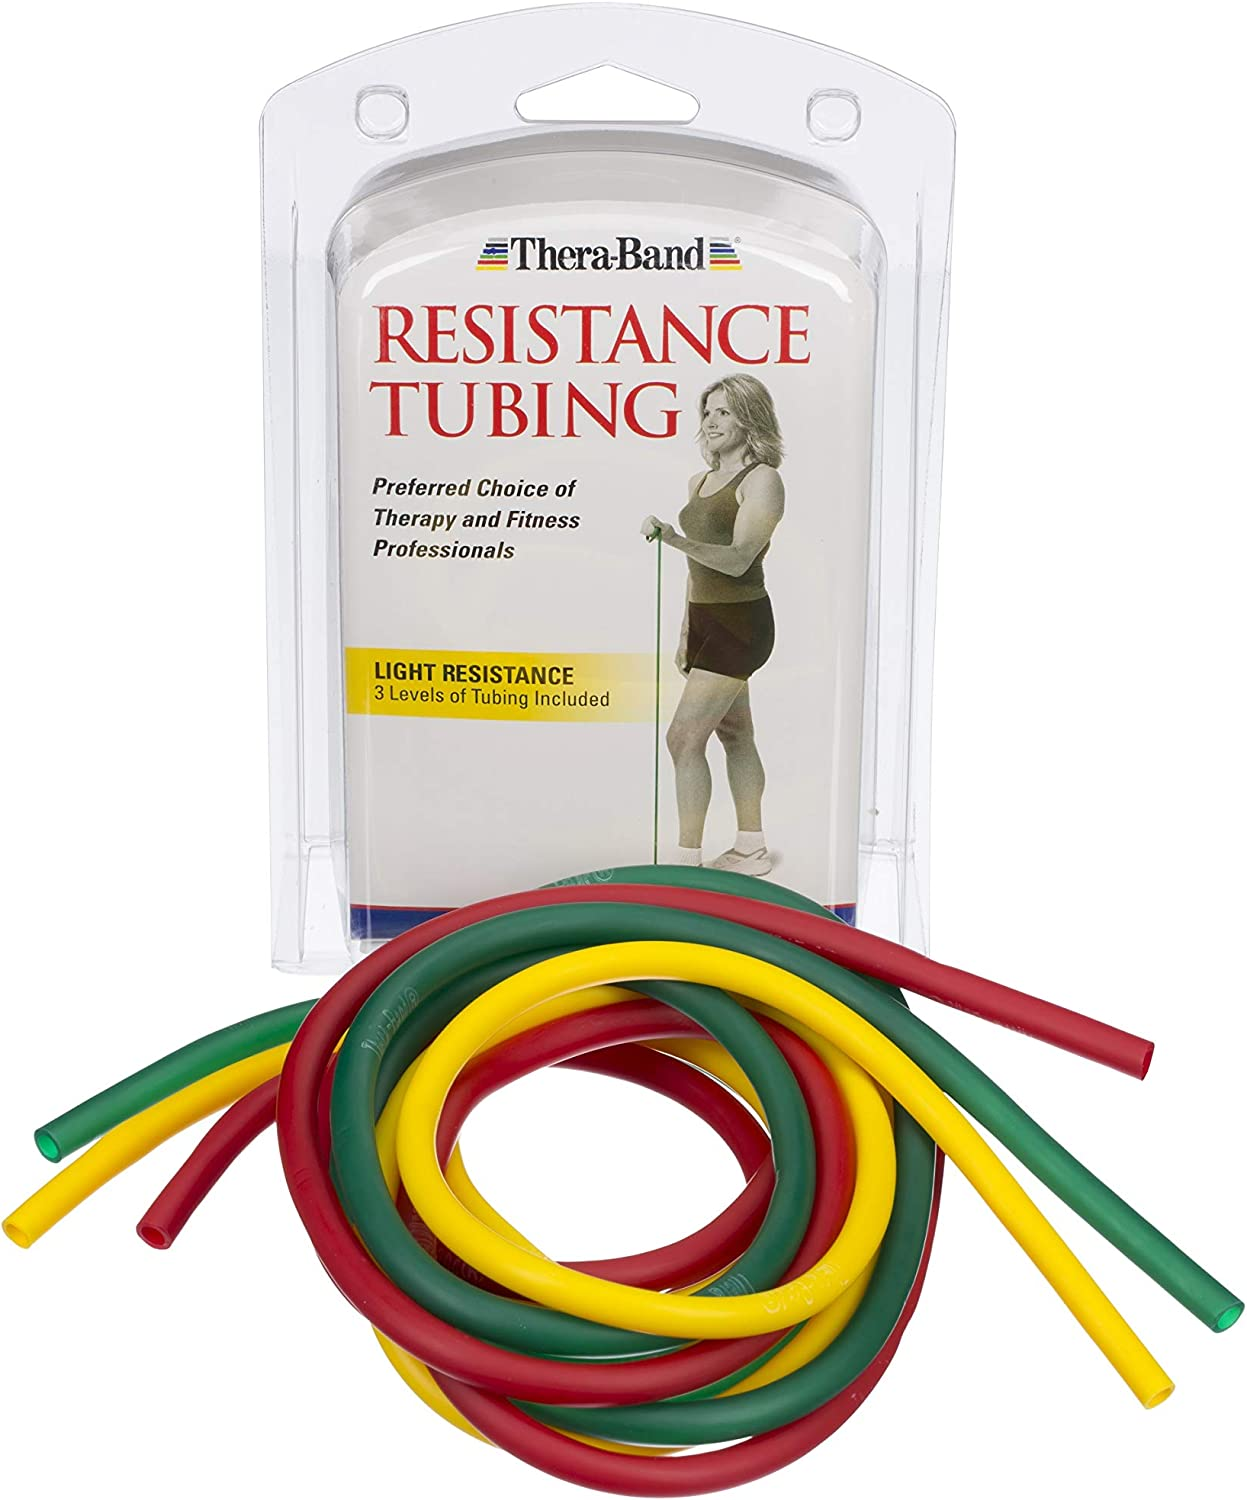 TheraBand Professional Latex Resistance Tubing for Upper Body, Lower Body, and Core Exercise, Physical Therapy, Lower Pilates, at-Home Workouts, and Rehab